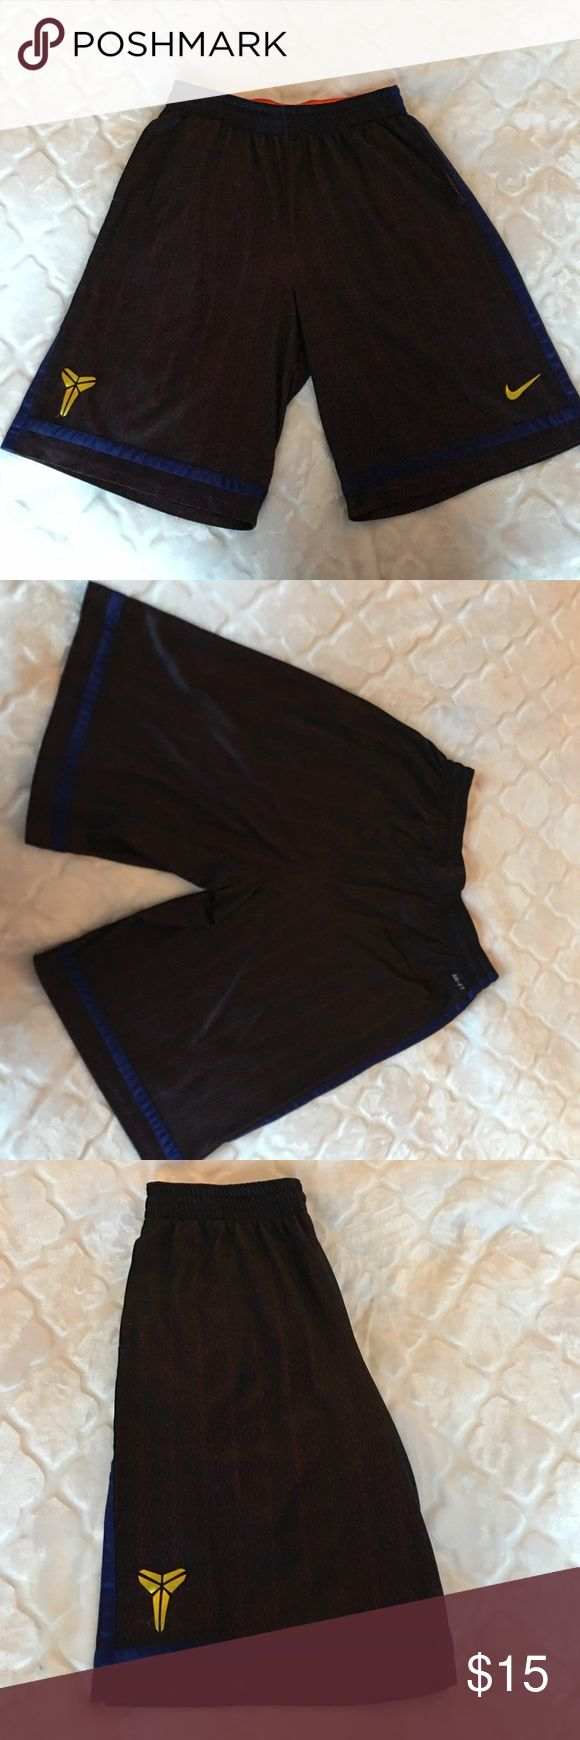 Nike: Kobe Bryant basketball shorts Nike: Kobe Bryant basketball shorts / Maroon and Navy speckle with Gold / XL / Worn a few times Nike Shorts Athletic